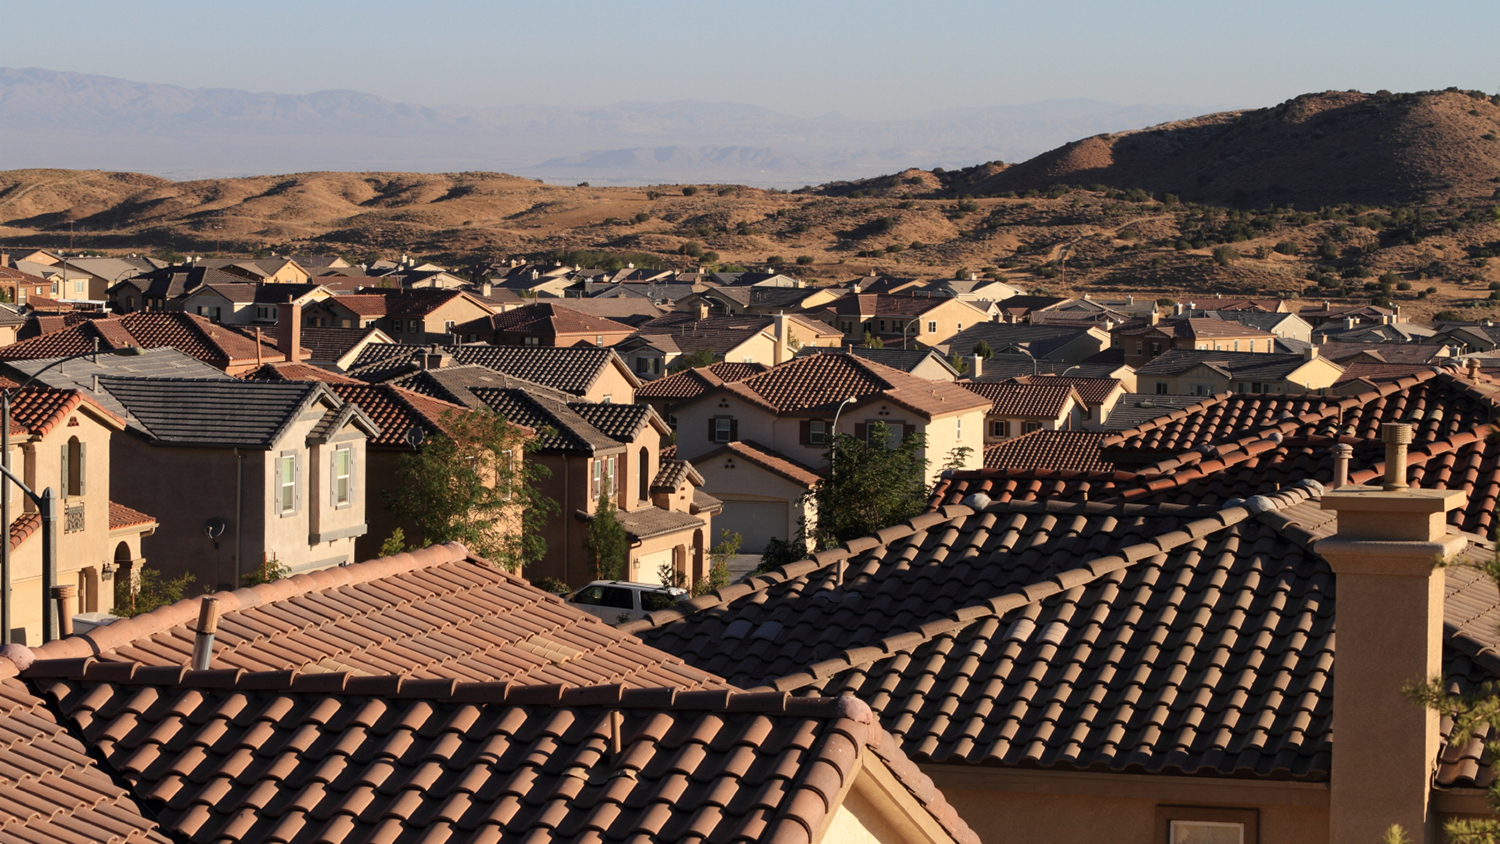 California suburb rooftops